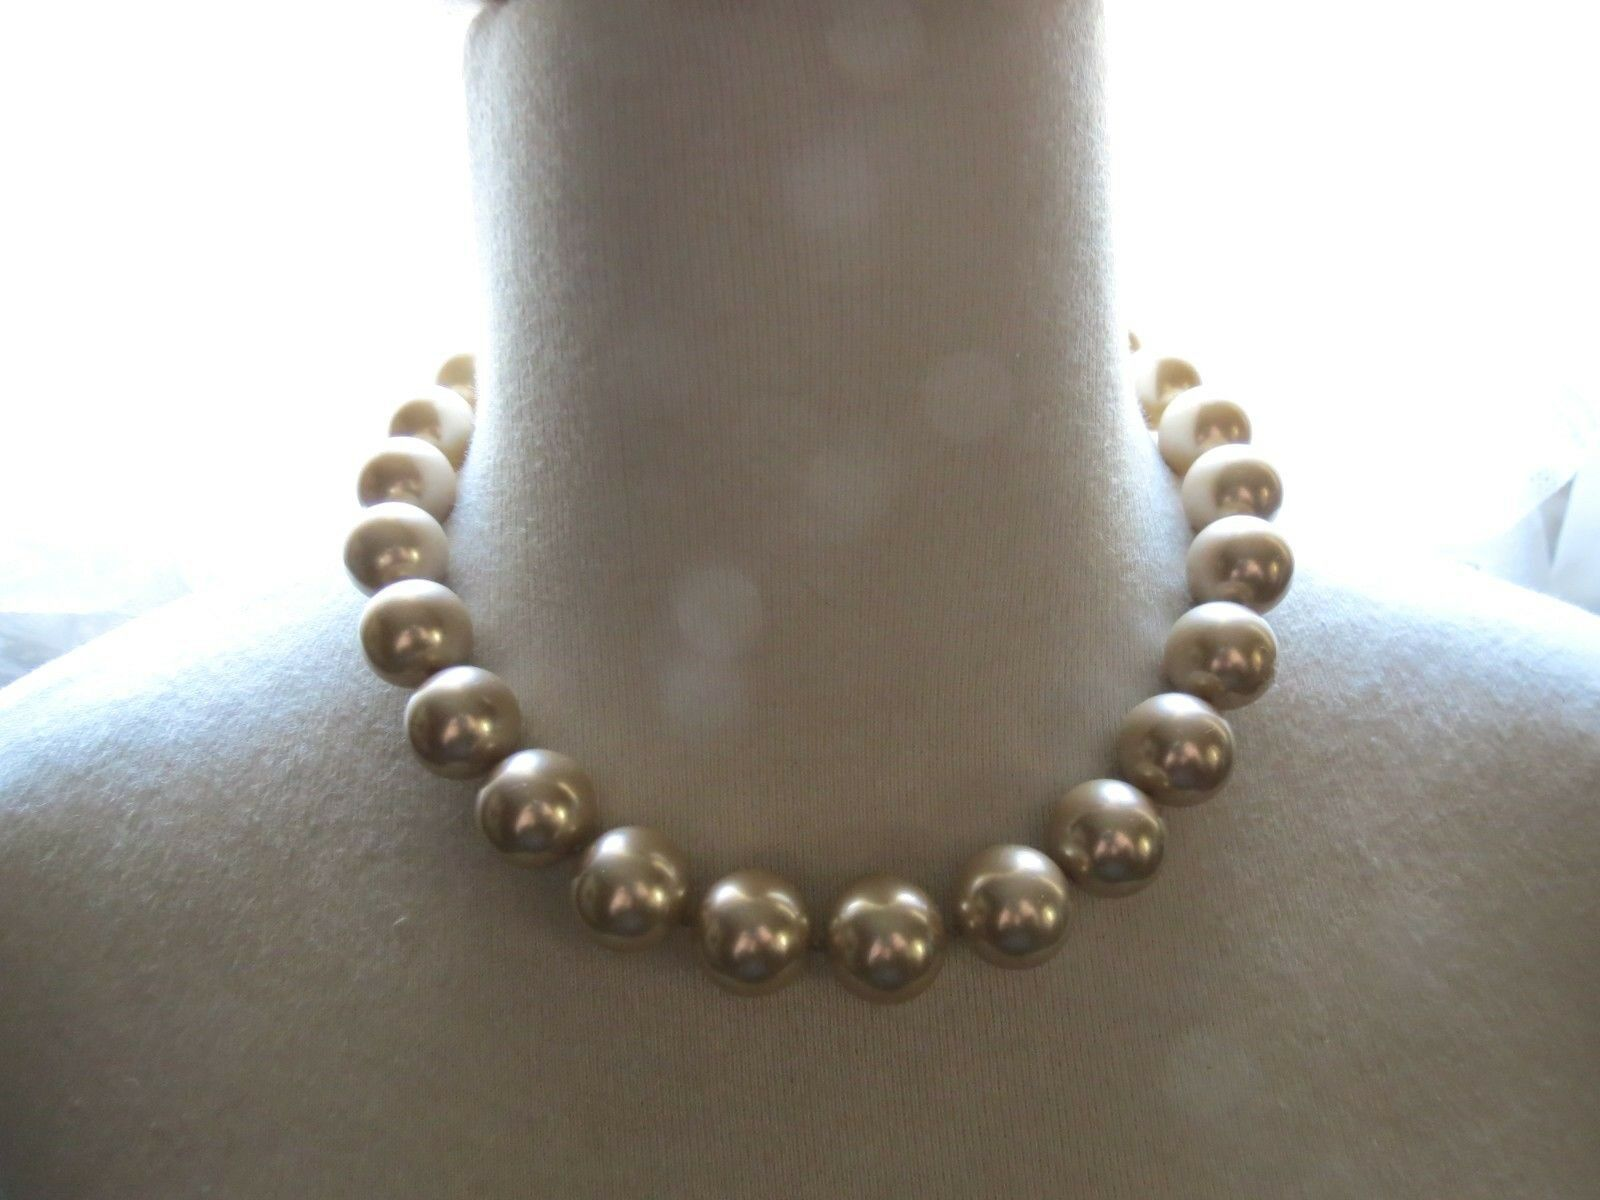 VTG Monet Big Pearl Necklace Hand Knotted Sable Cream Lobster 16mm Glass Beads image 3